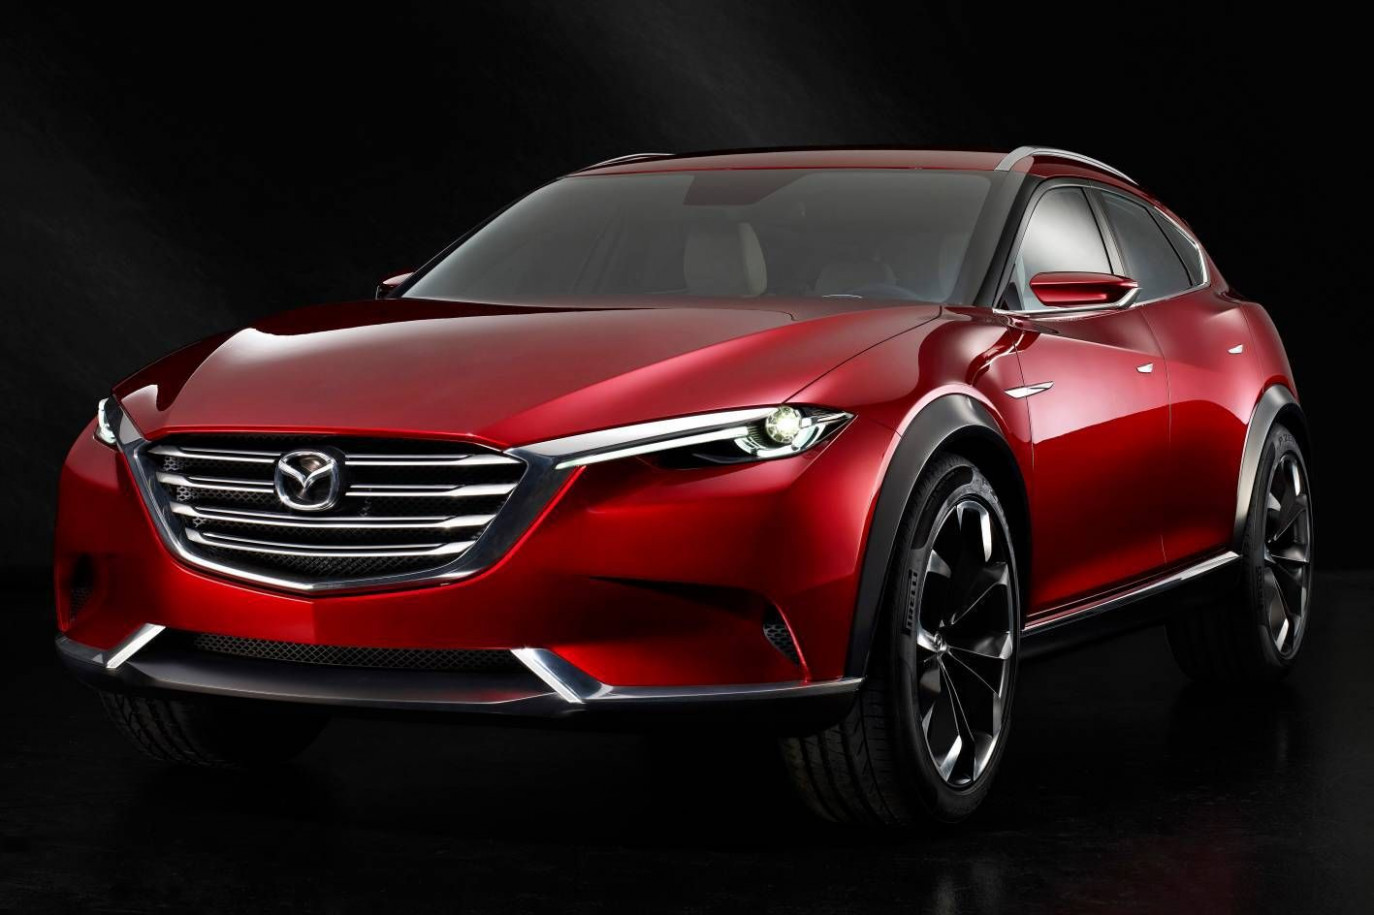 7 Mazda CX 7 Release Date, Specs and Price Rumor